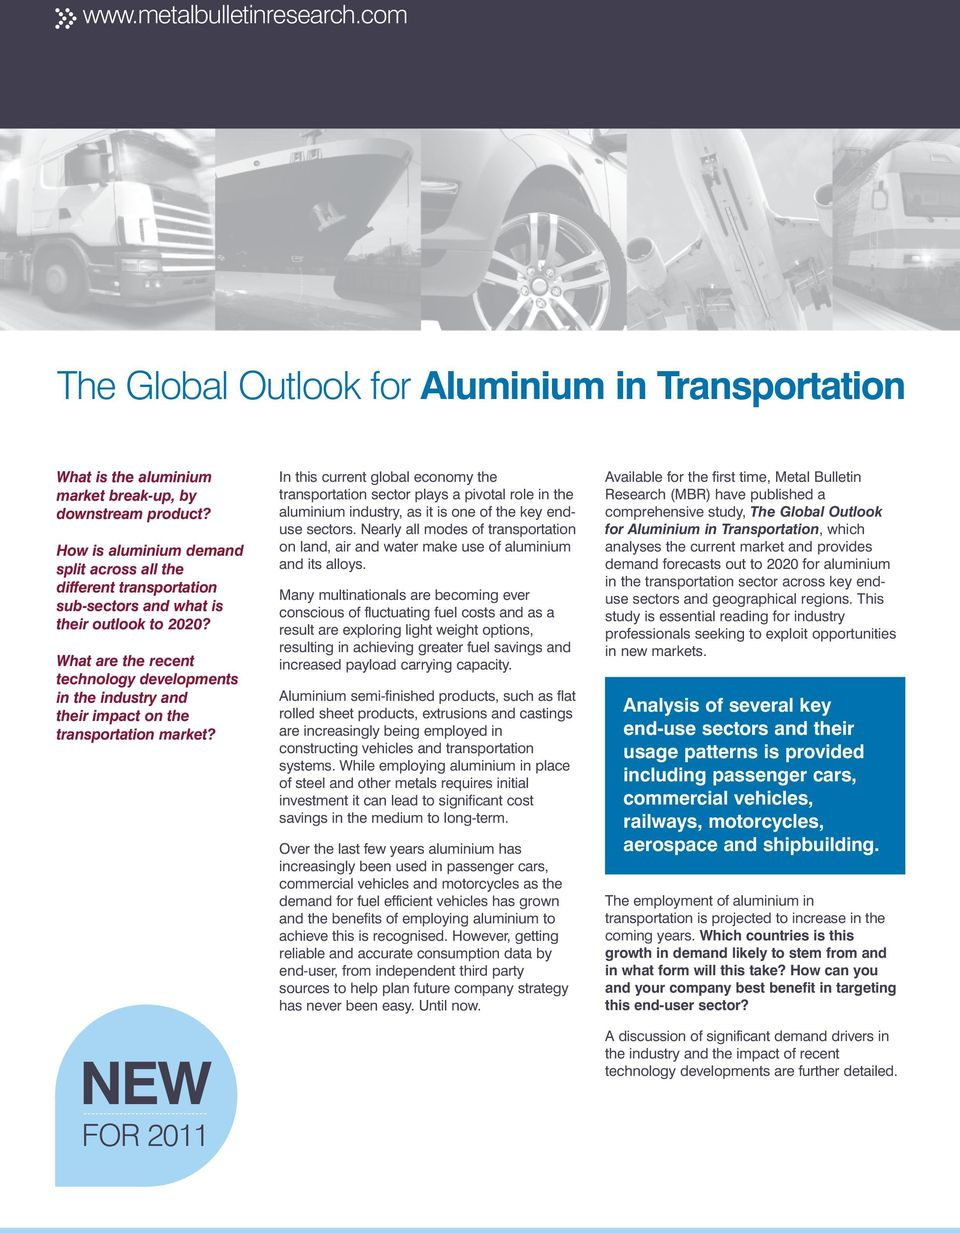 What are the recent technology developments in the industry and their impact on the transportation market?